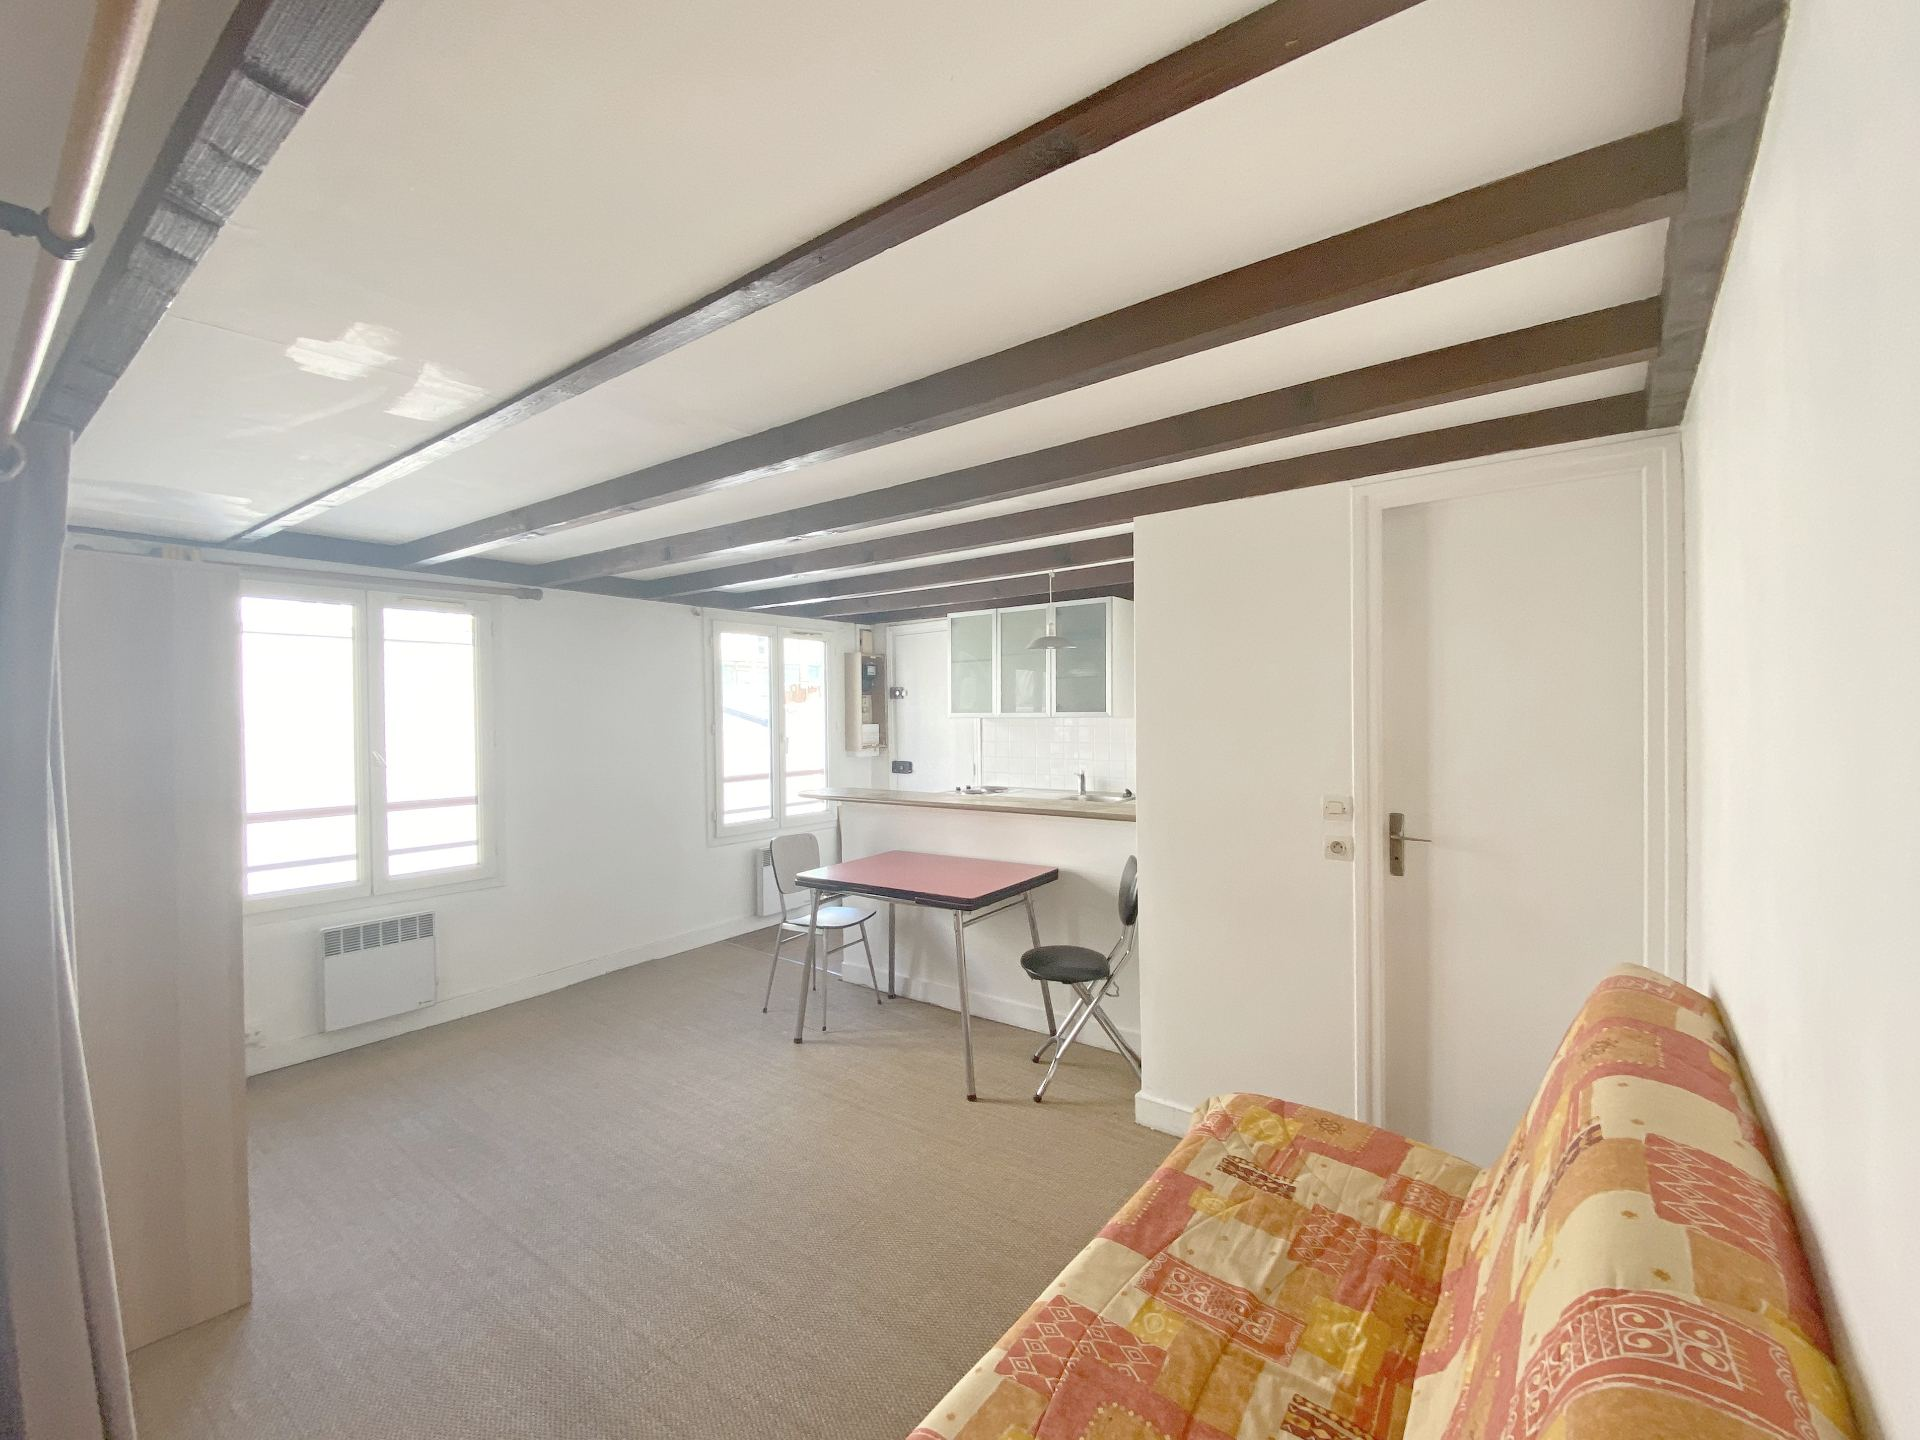 Montmartre, Abbesses, Beautiful studio in good condition in 4th and last floor, ceiling beams, quiet, on unobscured courtyard without opposite! 3